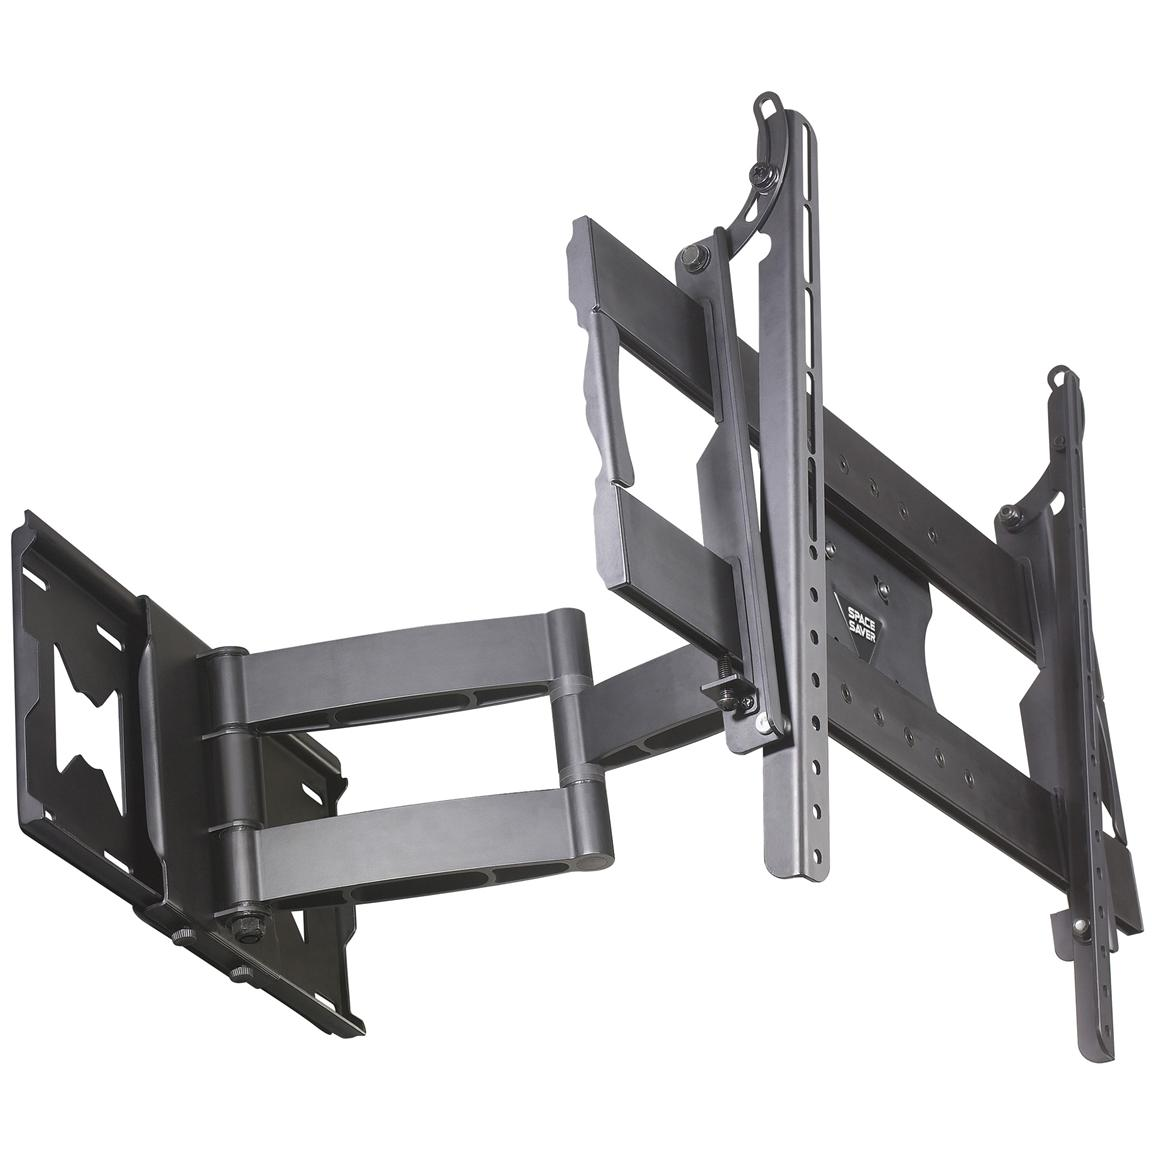 Space Saver 30504n Flat Panel Tv Full Motion Wall Mount